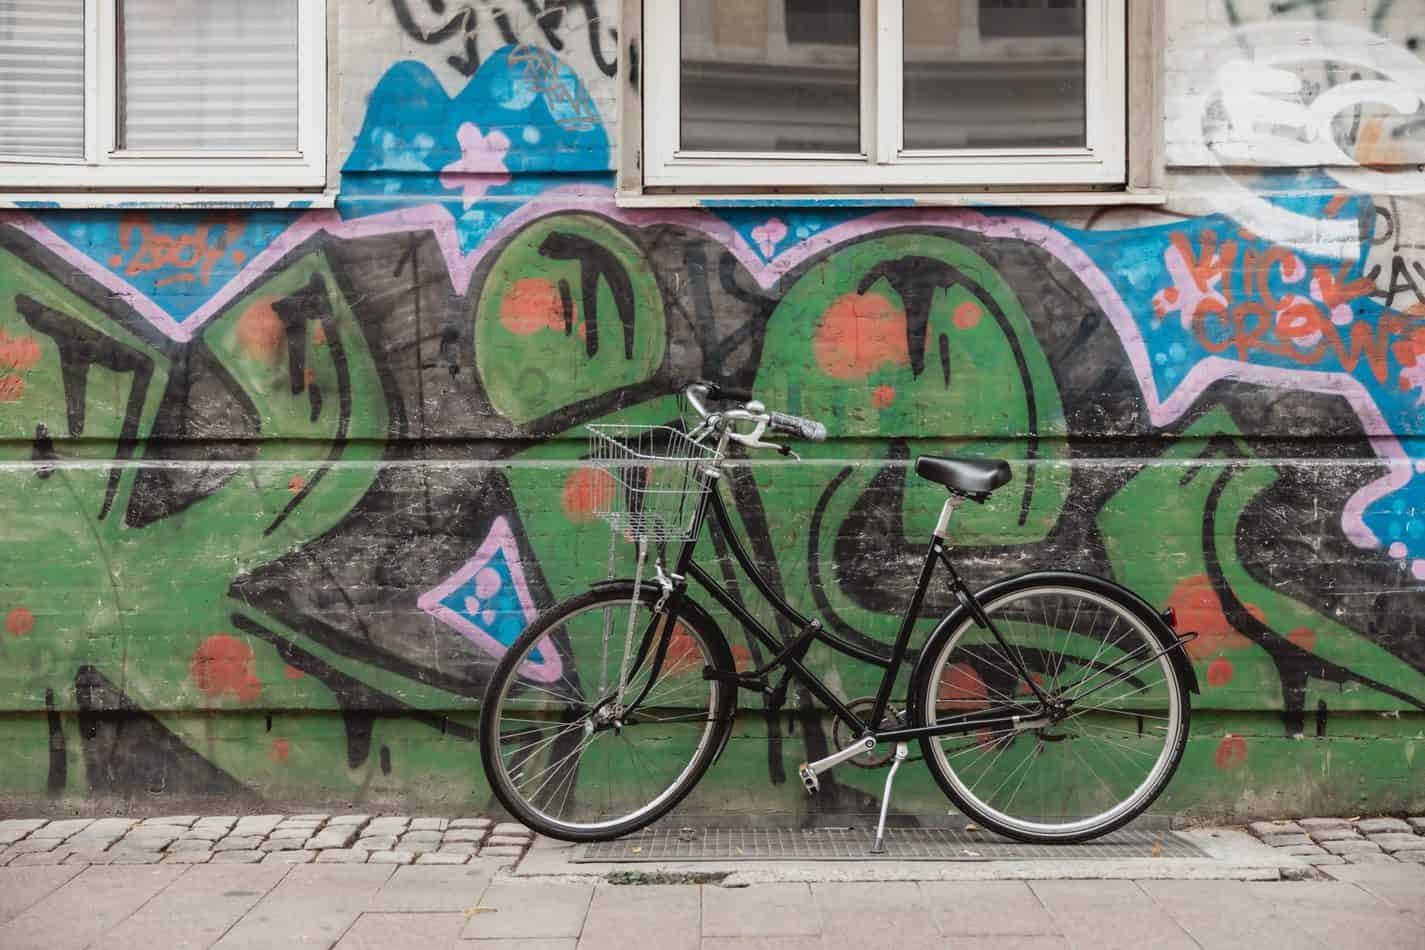 Black bicycle in front of green grafitti art